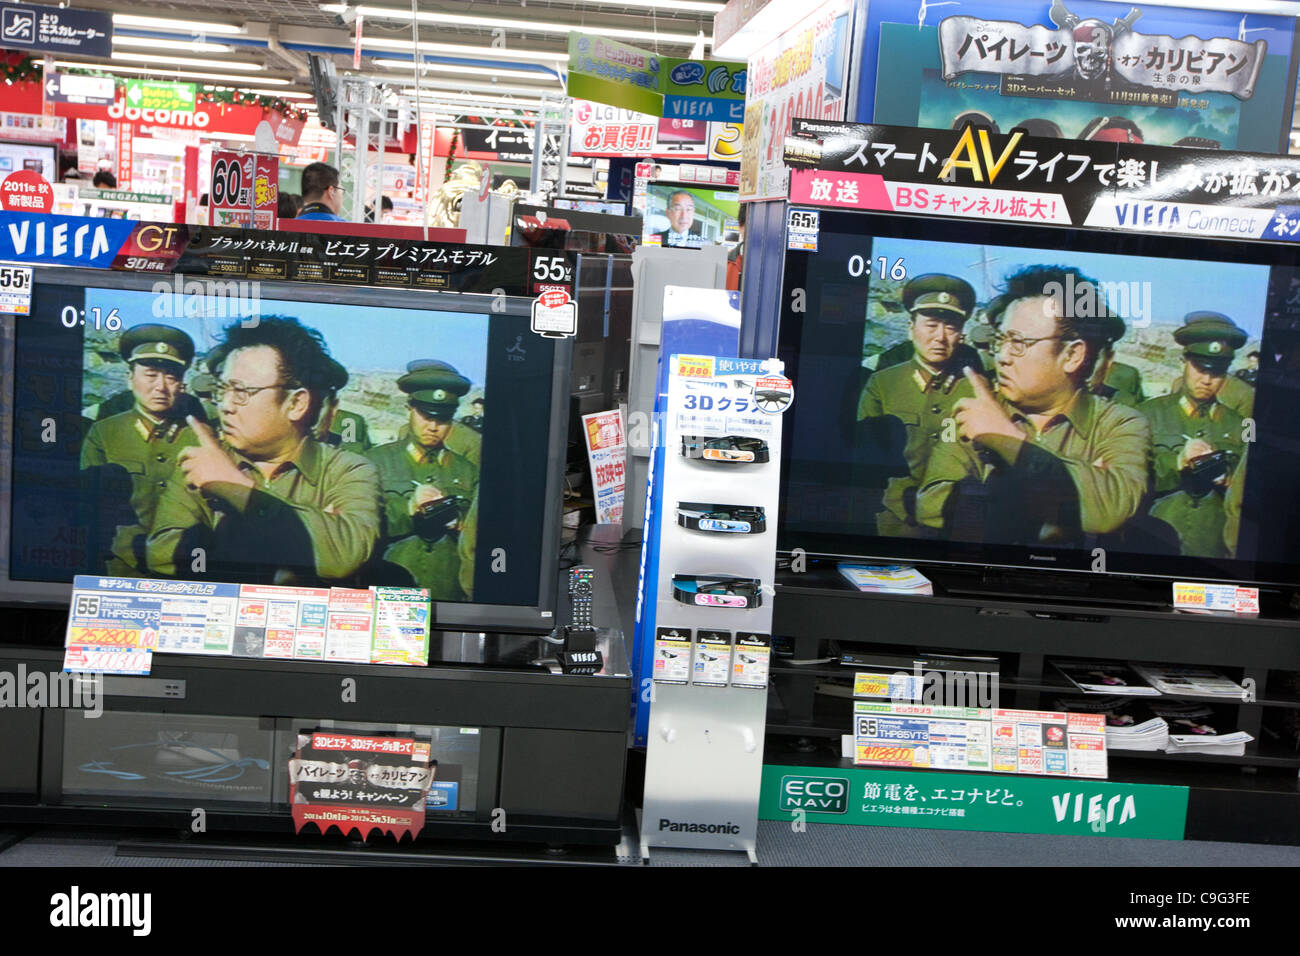 Images of Kim Jong-Il appear on Japanese television in the wake of his death and transition of power to his son - Stock Image